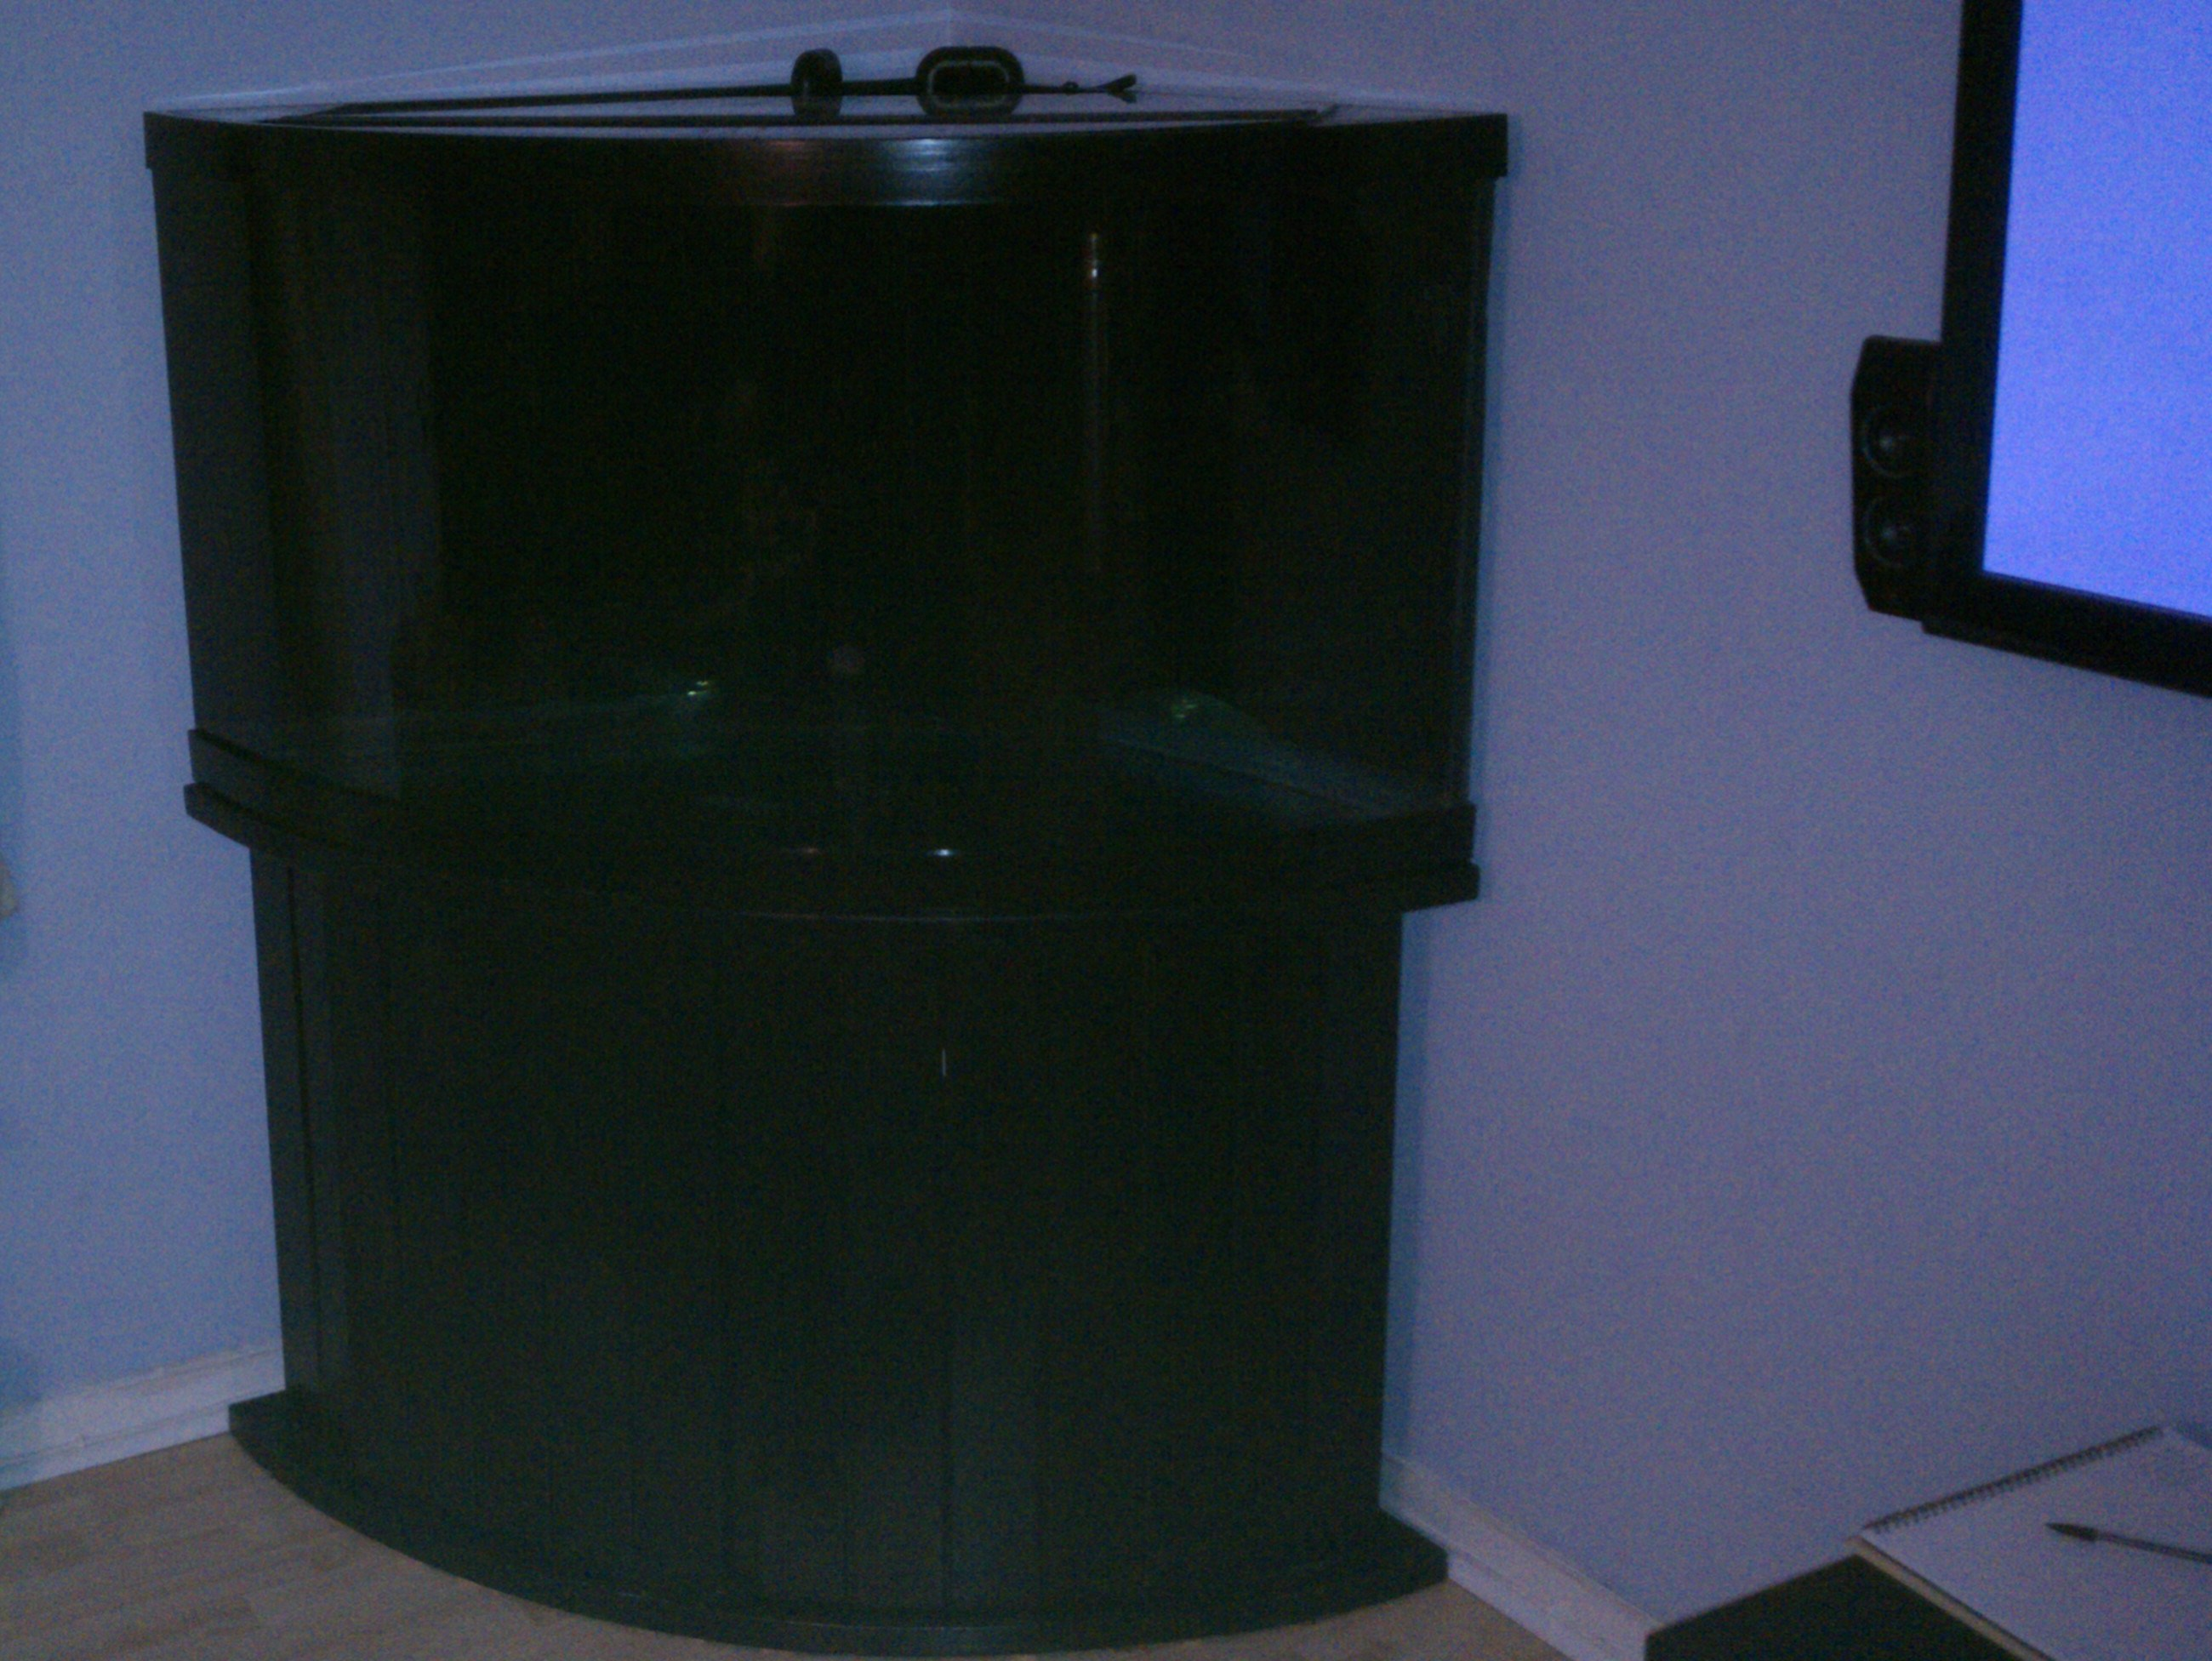 All Filled With Water And Painted Black Including The Back 2 Walls